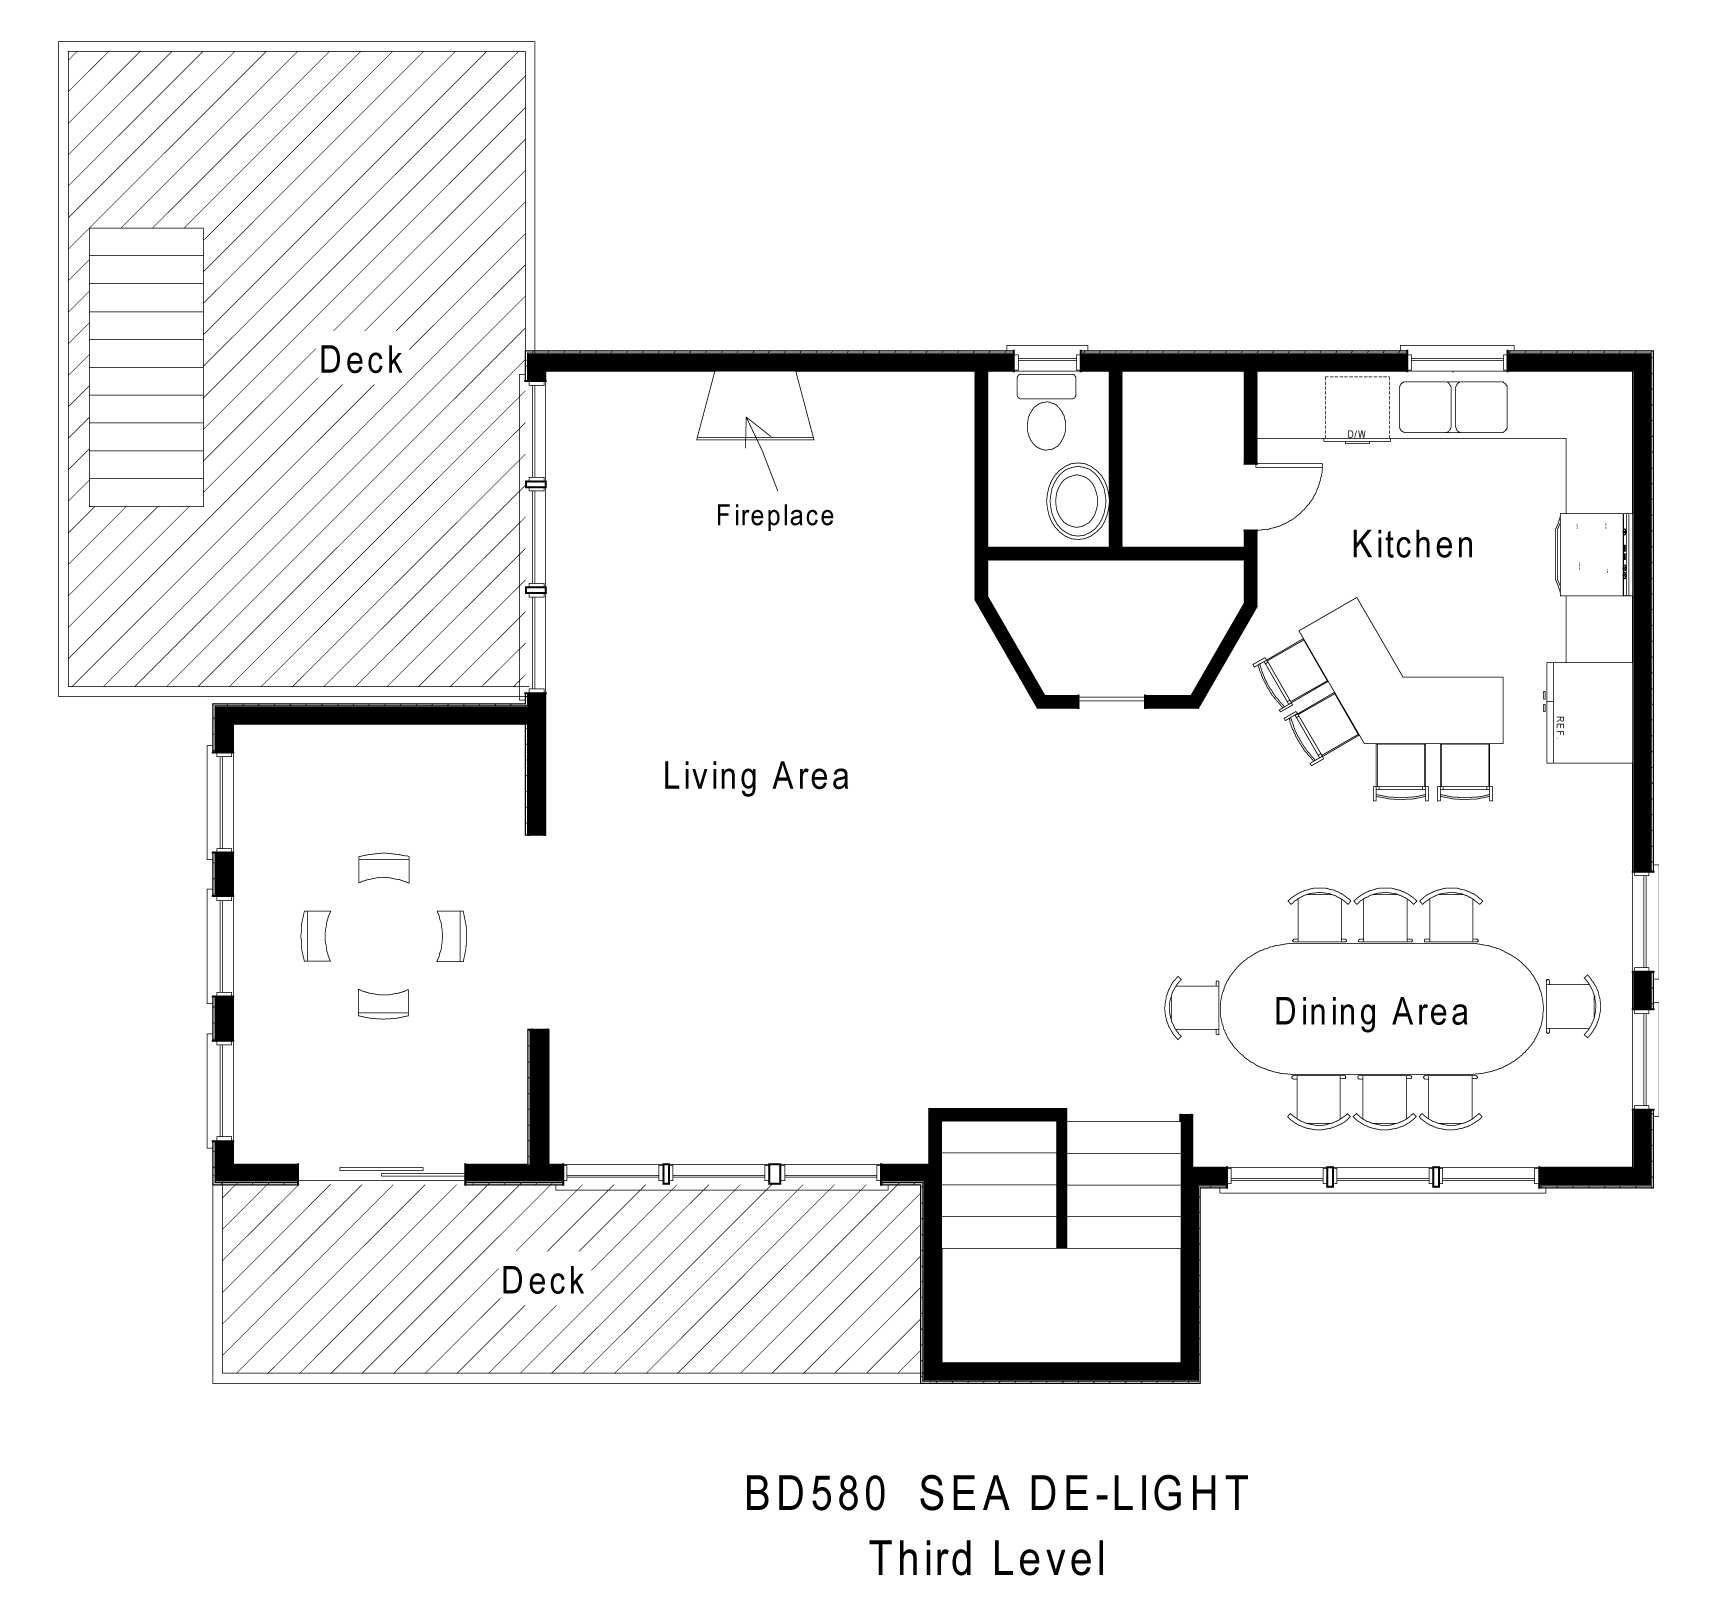 Sea de light hatteras rental midget realty for Meyer may house floor plan